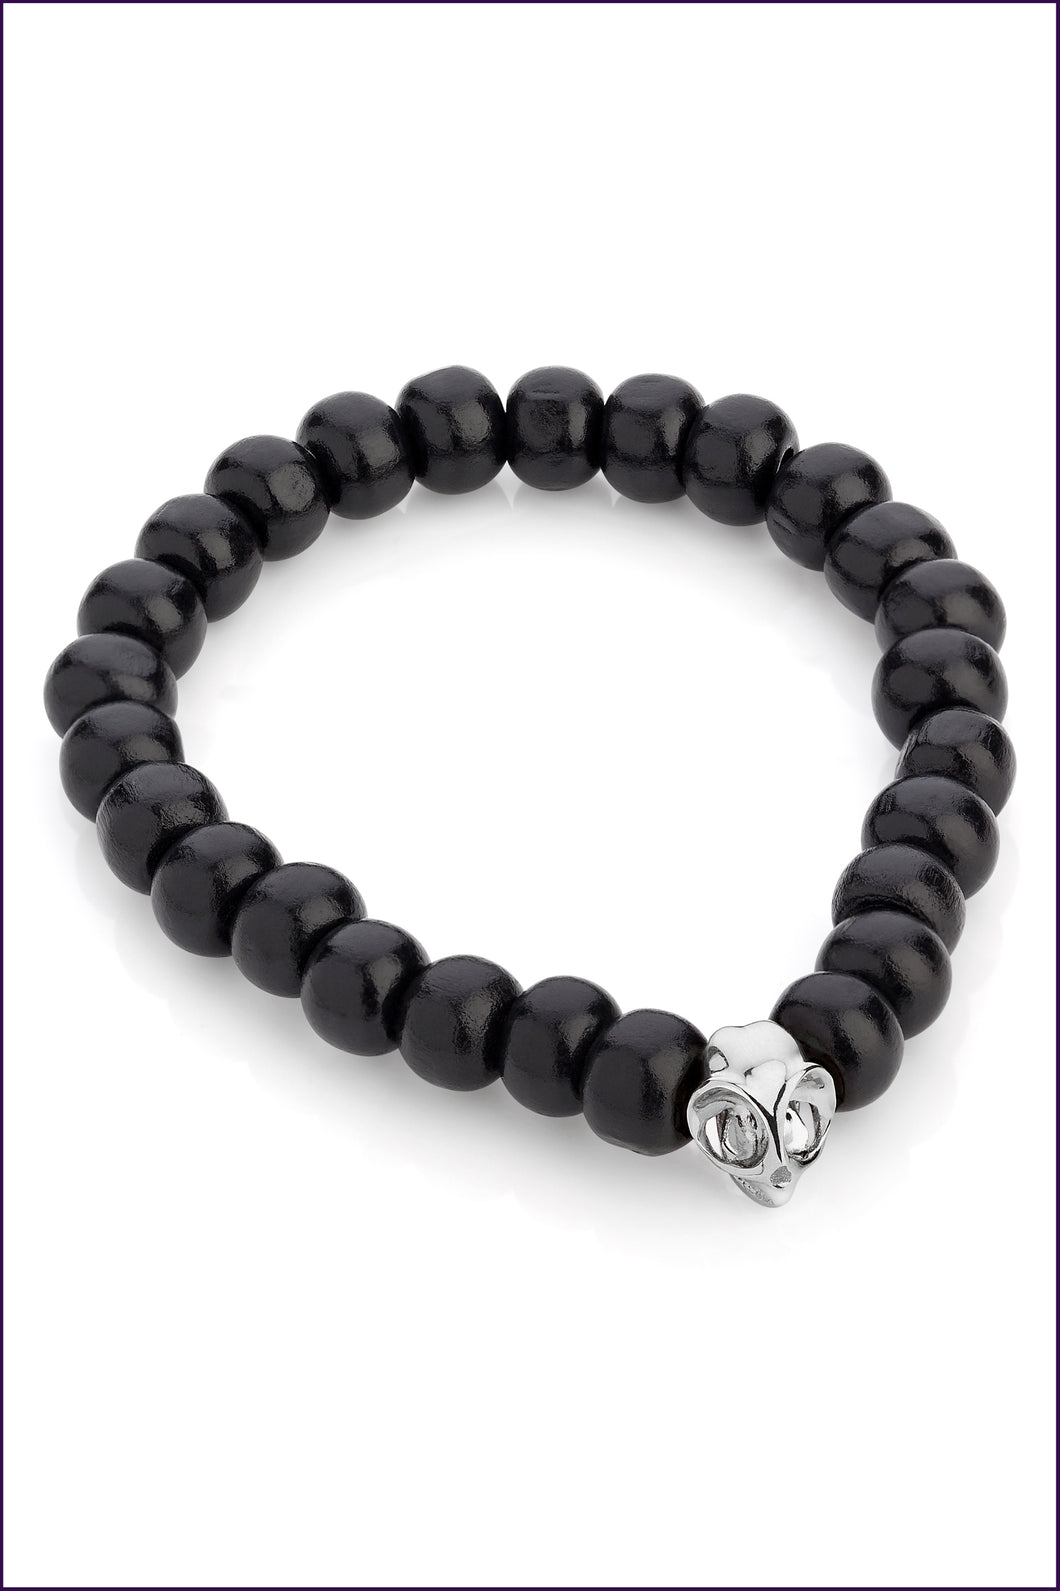 Silver Tarsier Bracelet, Black Beads. Men. Violet Darkling